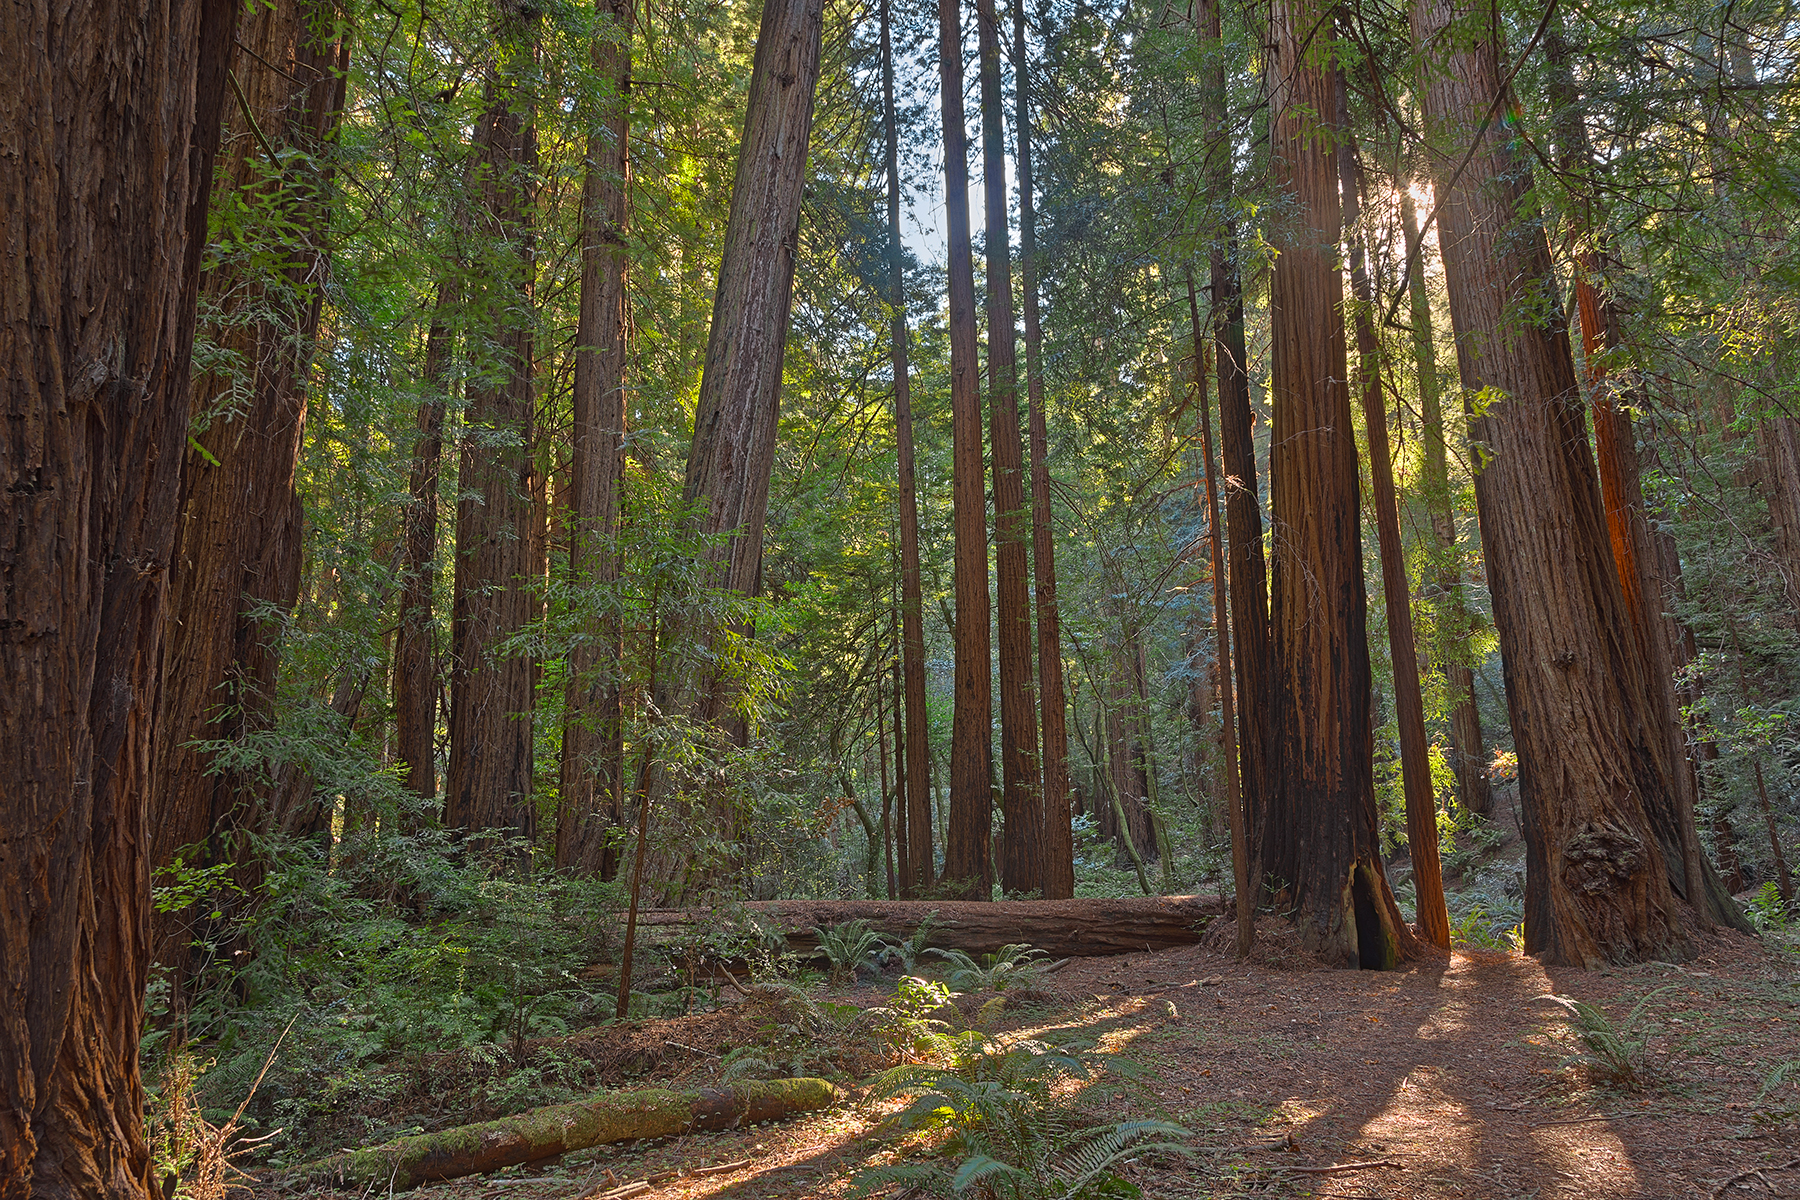 Muir woods scenery - hdr photo